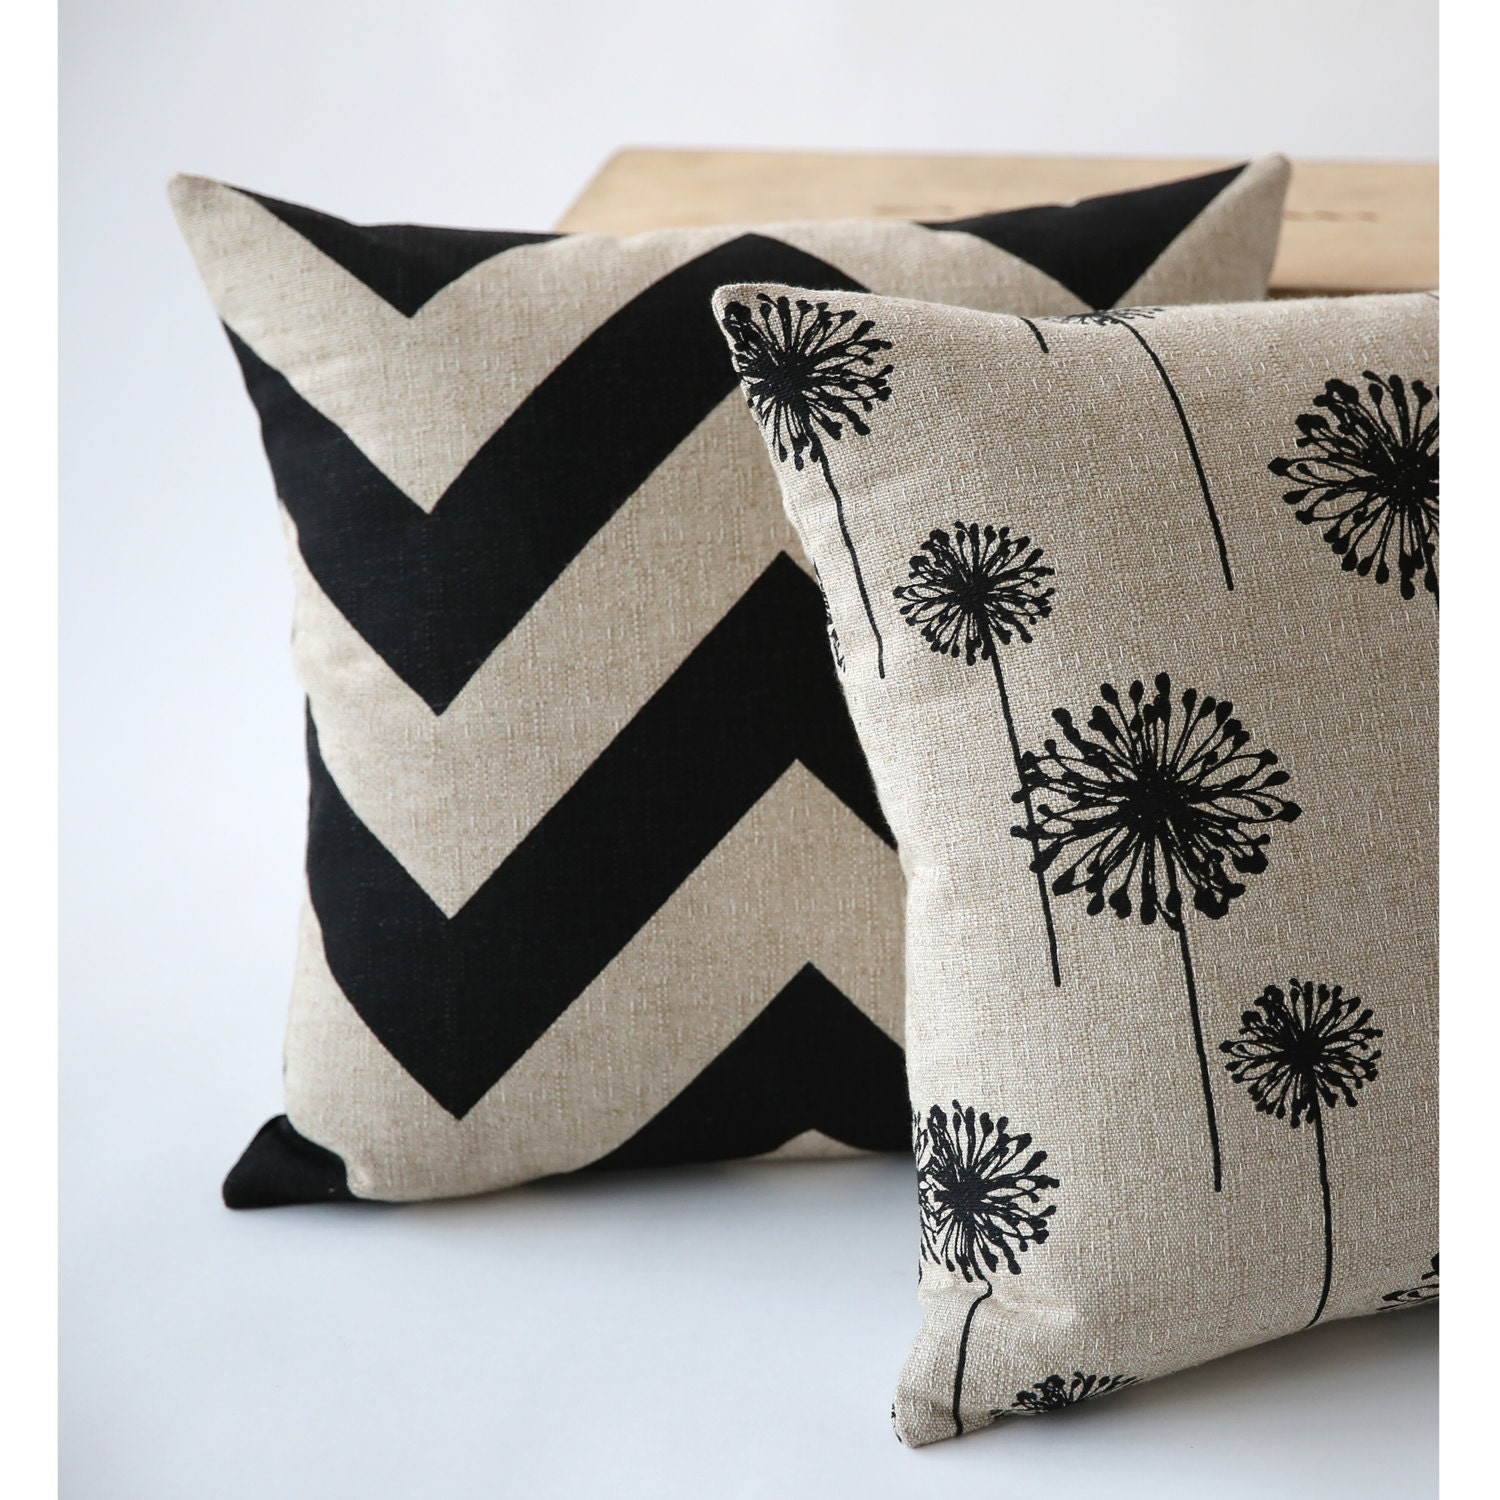 One Decorative Throw Zipper Pillow Cover Black by Pillomatic